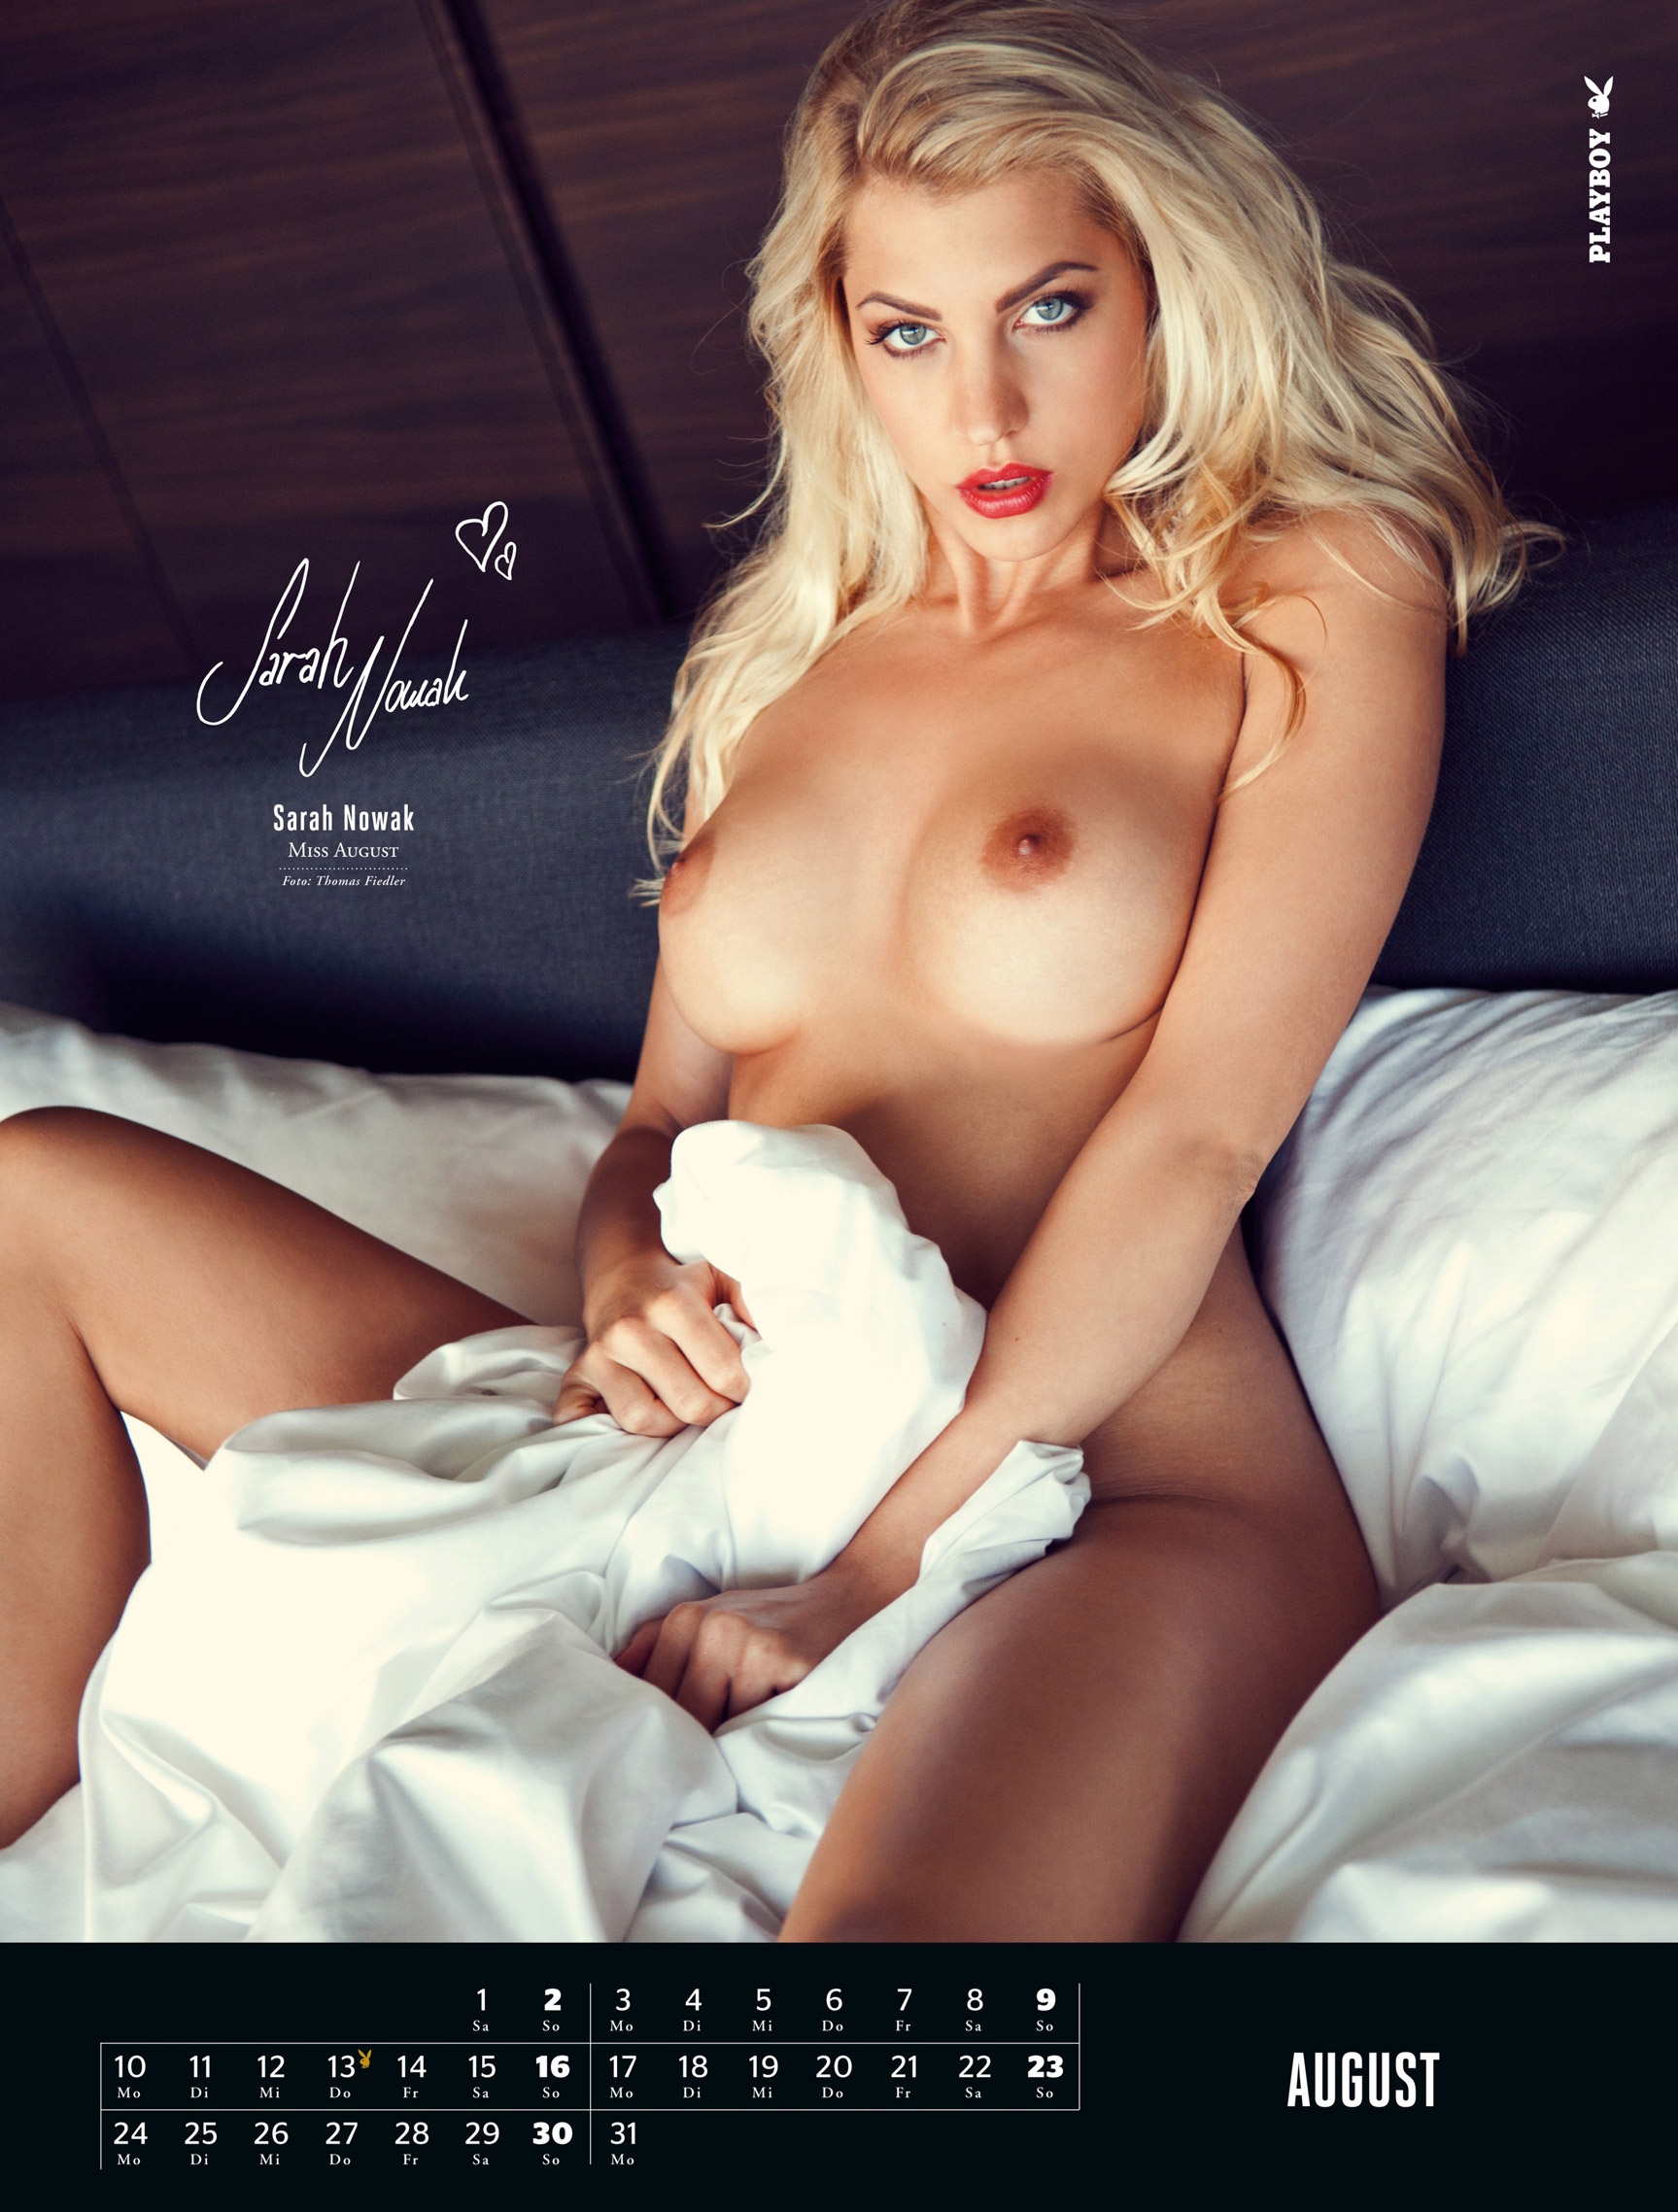 ����������� ��������� Playboy Germany Playmate Calendar 2015 - Miss August 2014 Sarah Nowak